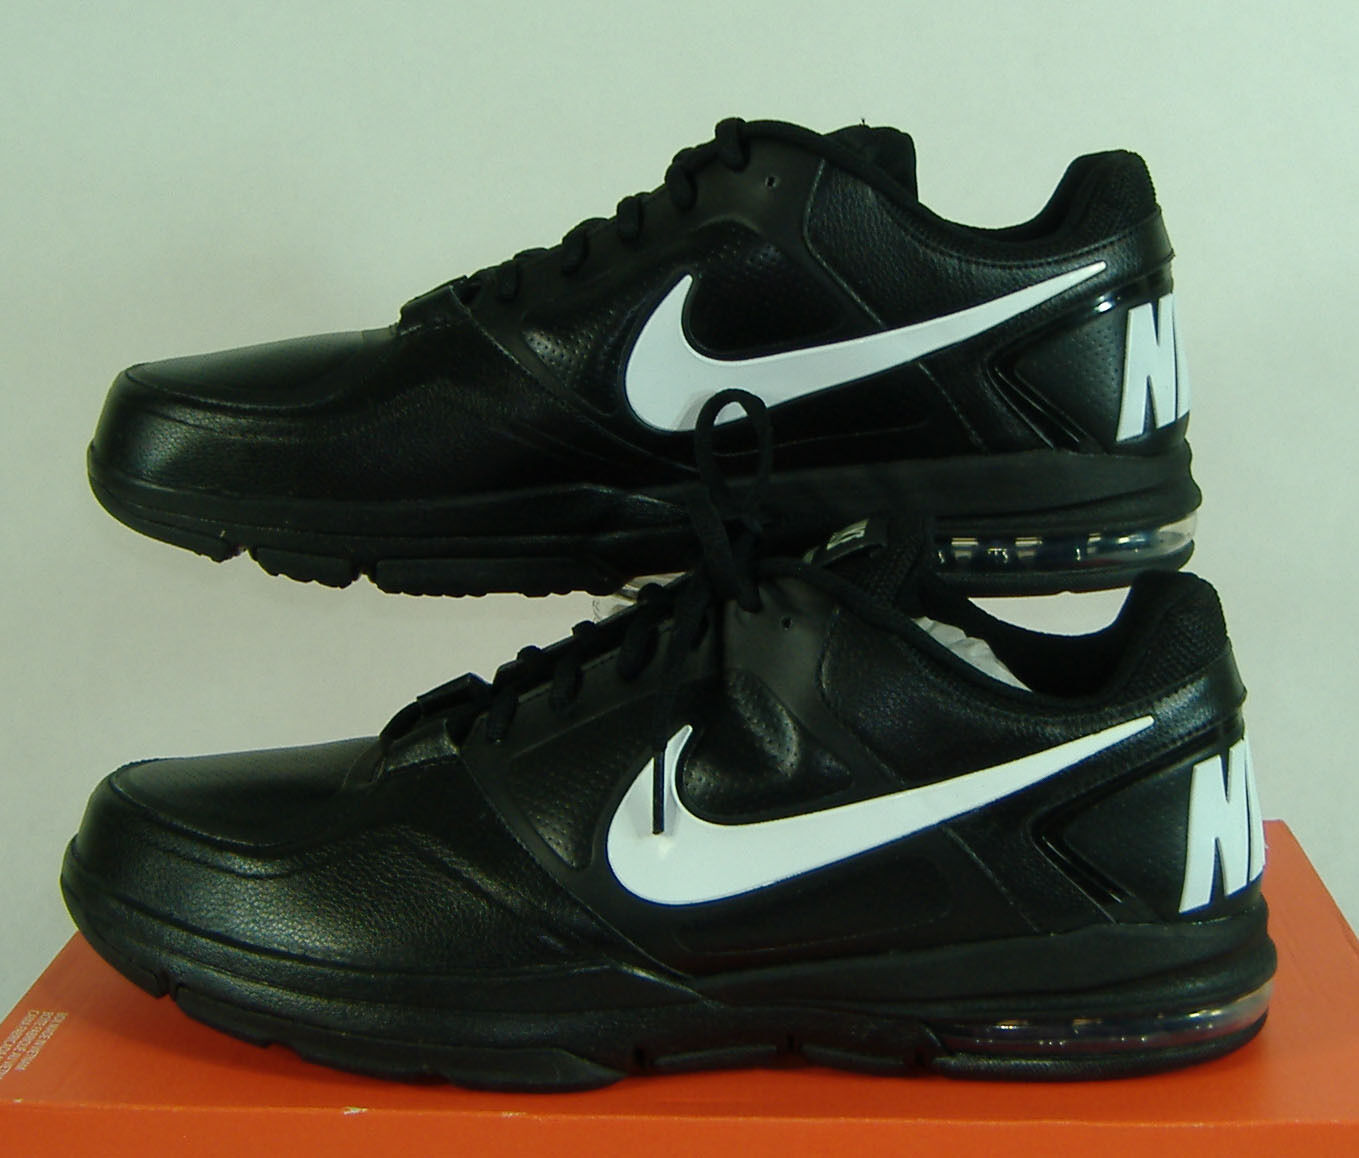 best-selling model of the brand New Mens 13 NIKE Air Trainer 1.3 Low TB Black White Leather Shoes Price reduction